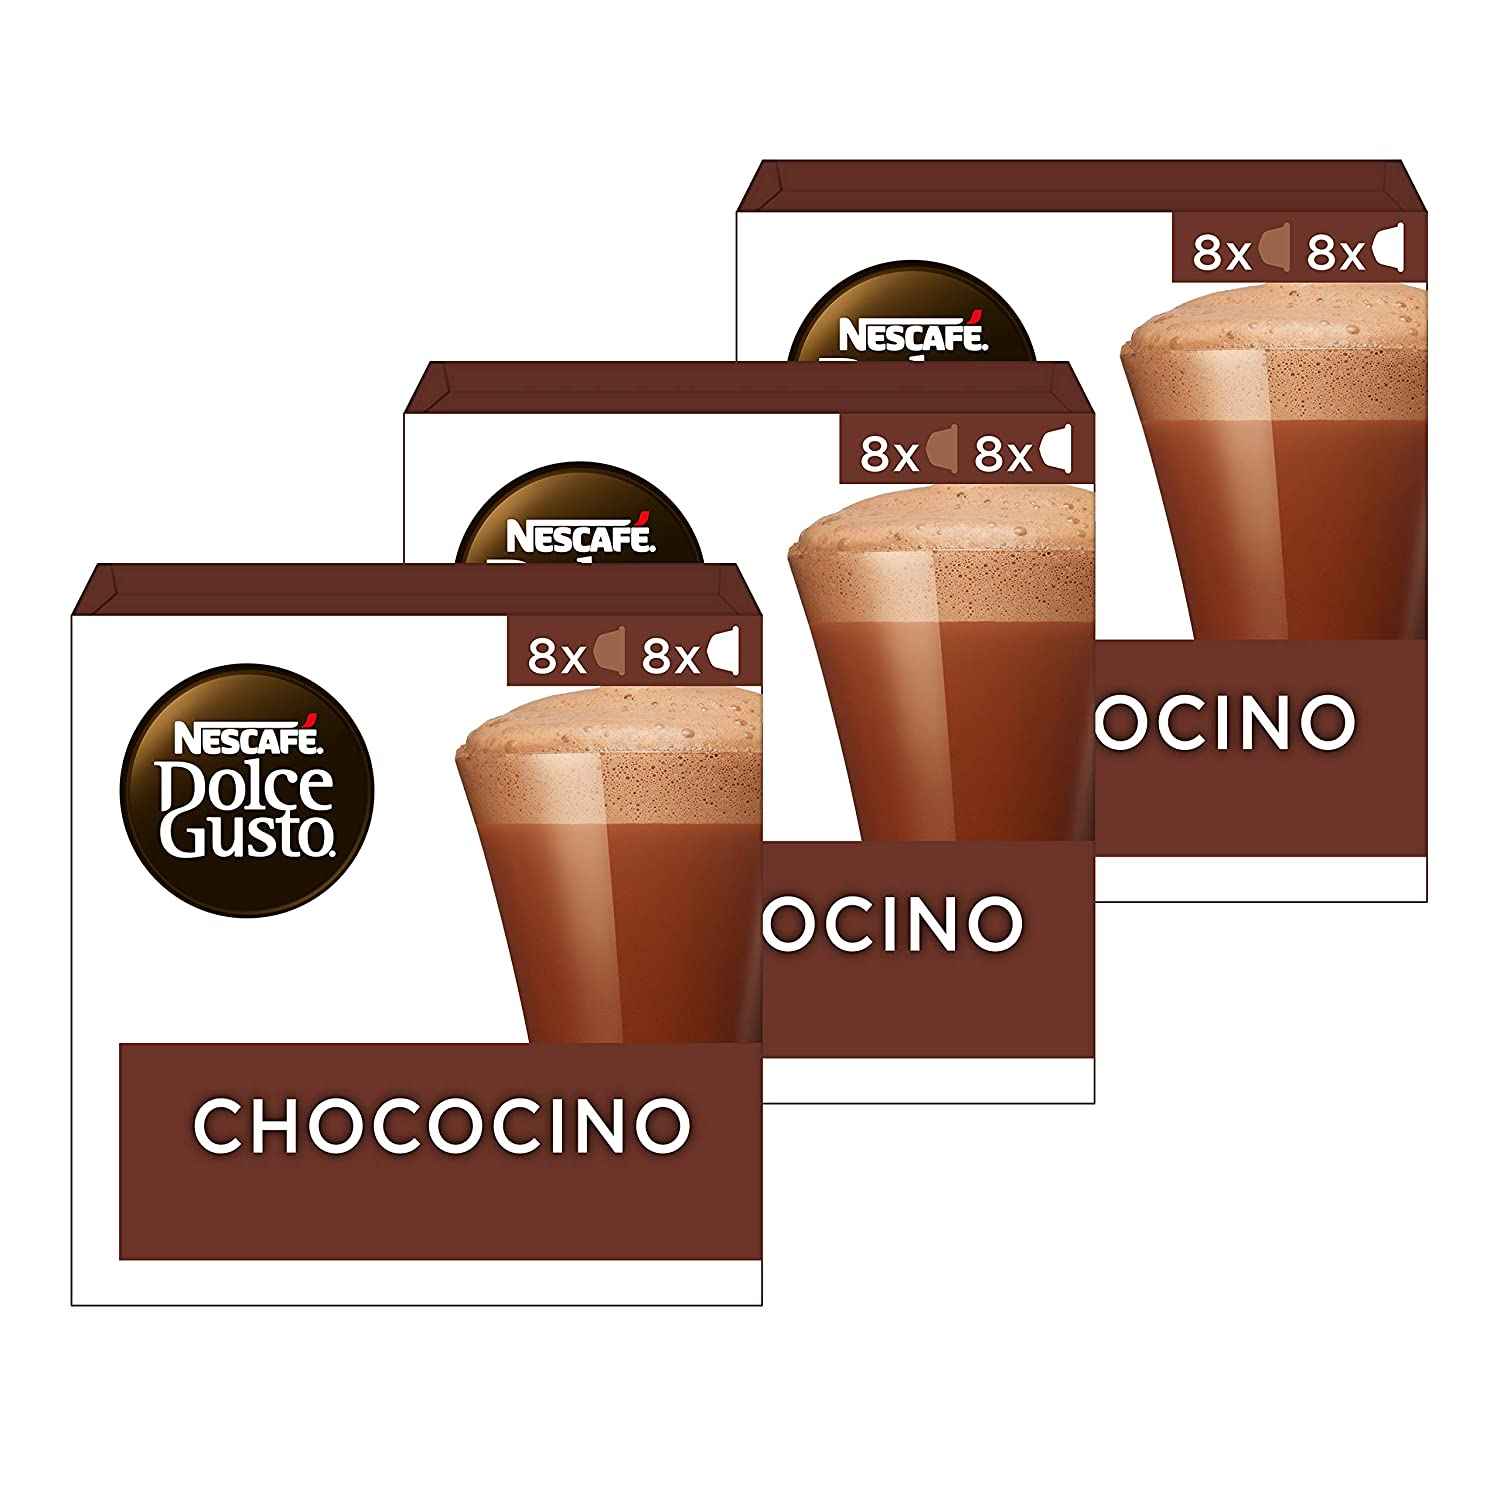 Nescafe Dolce Gusto Chococino 8 Per Pack Pack Of 2 Grocery Gourmet Food